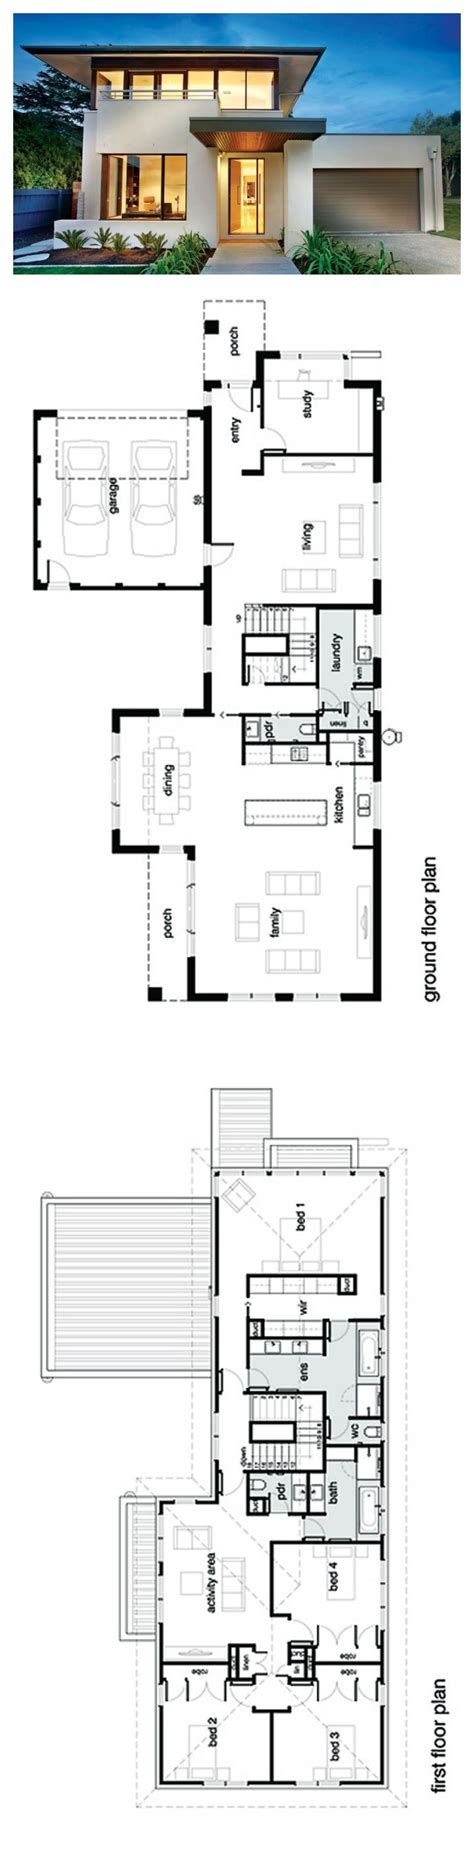 modern house floor plans free best 25 modern house plans ideas on pinterest modern